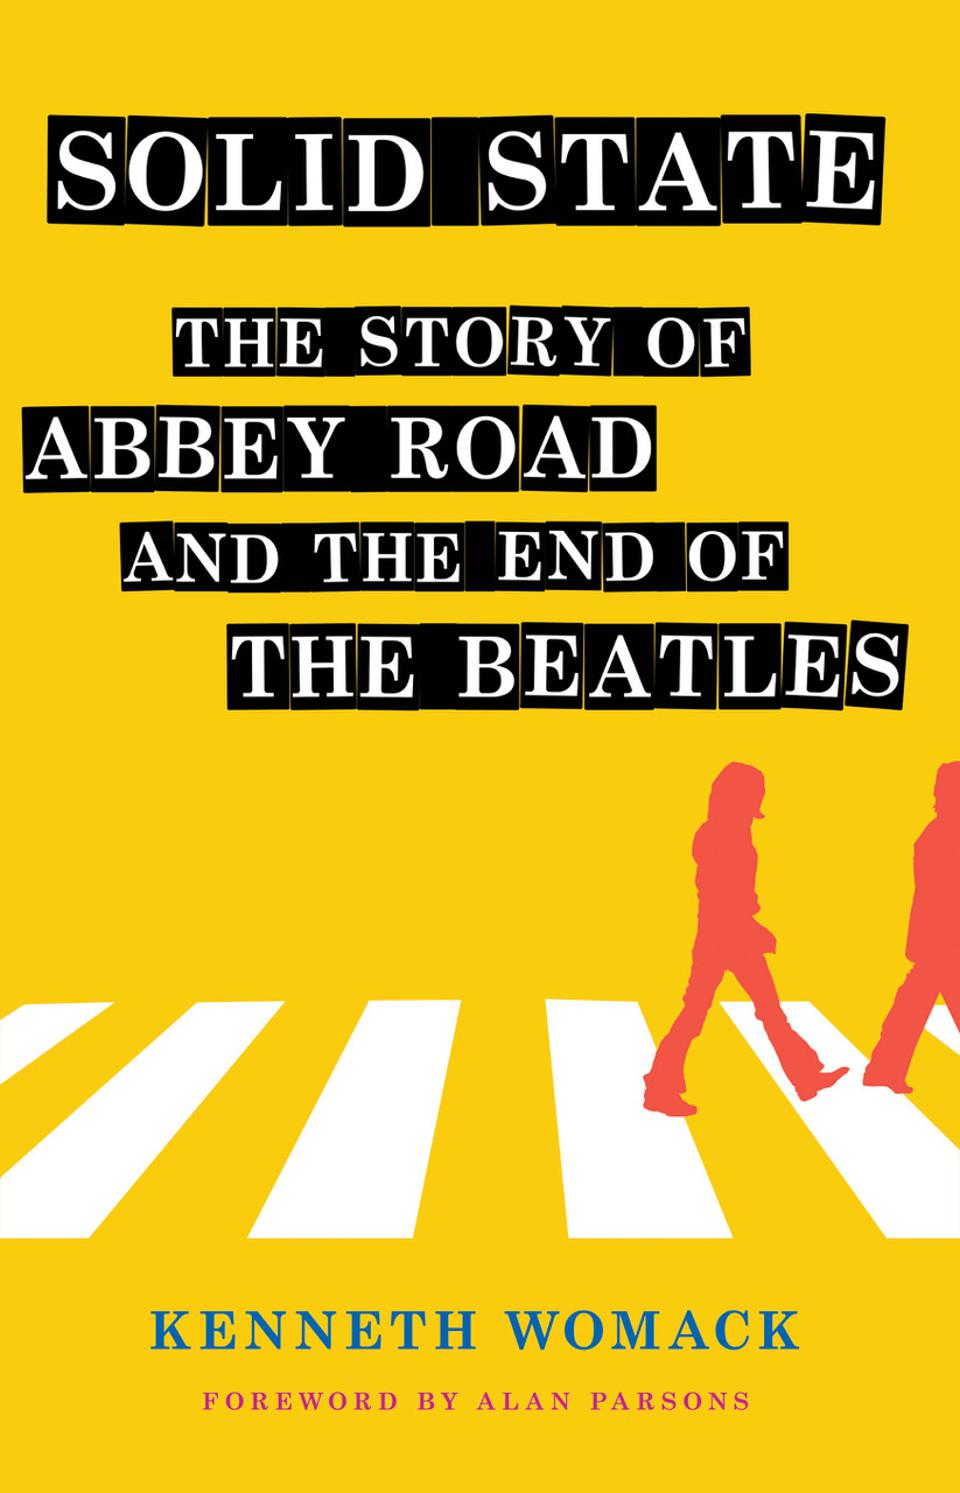 Solid State: The Story Of Abbey Road And The End Of The Beatles, with a foreword by Alan Parsons, by Kenneth Womack.